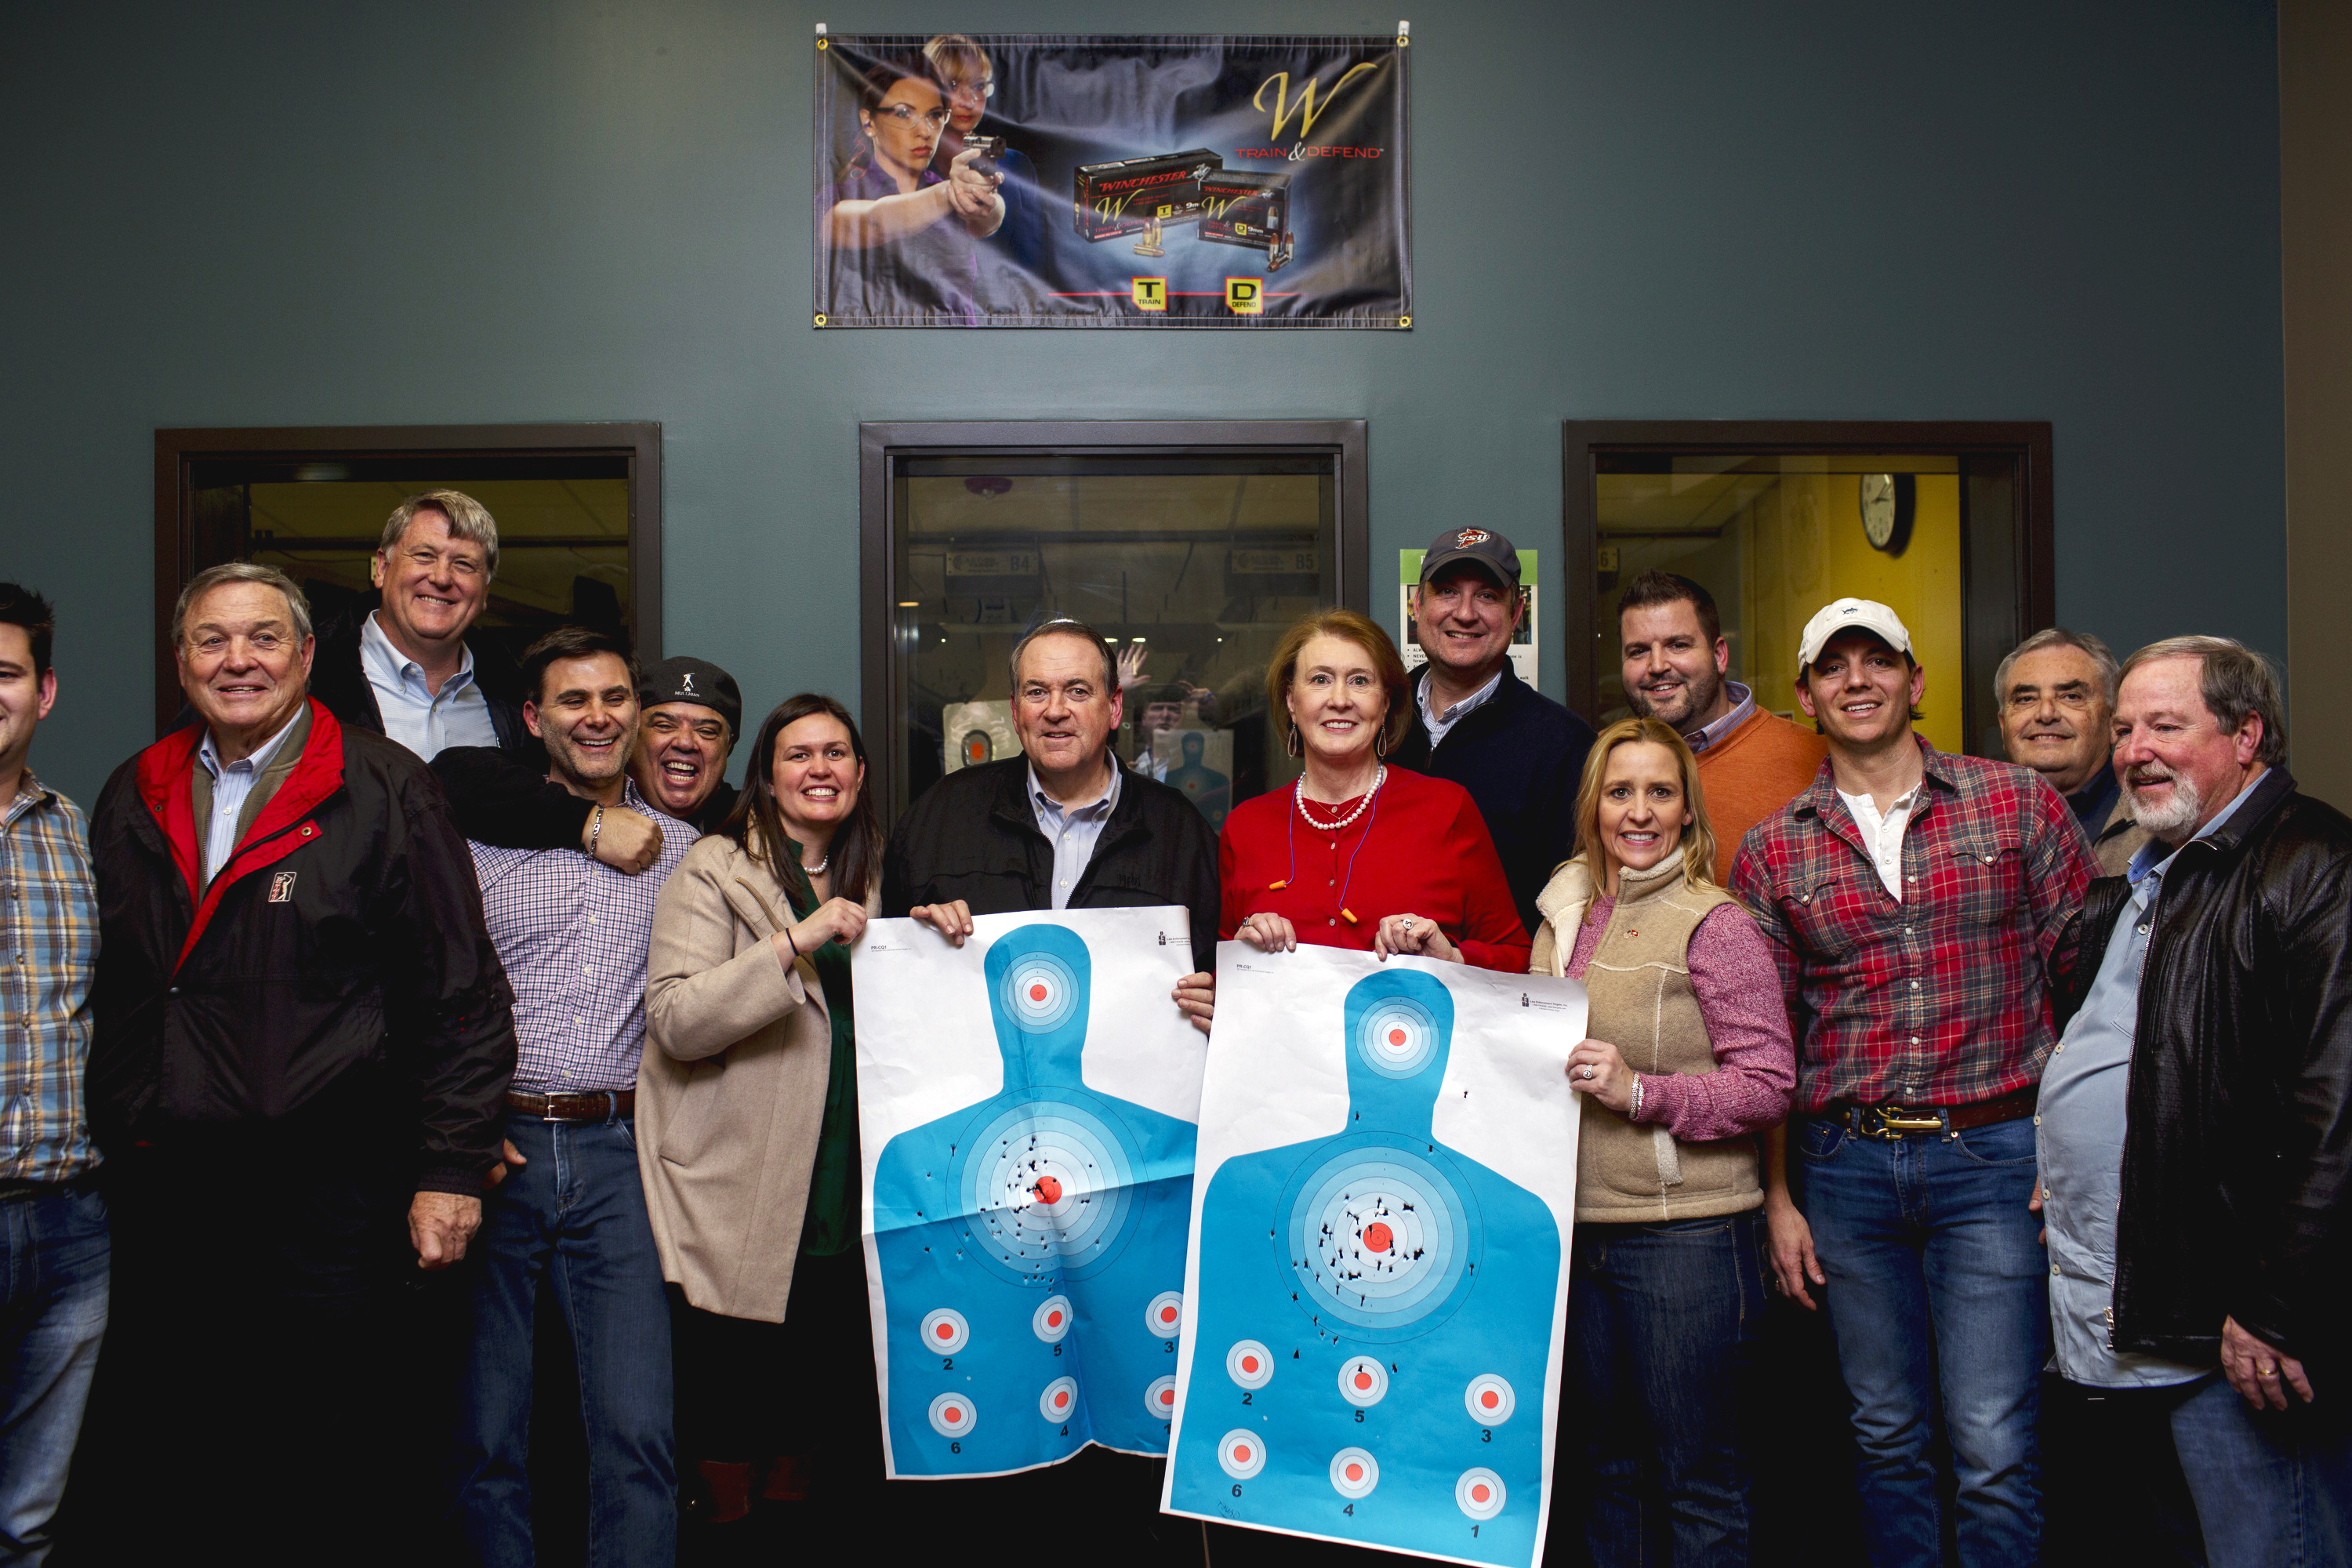 Former Arkansas Gov. Mike Huckabee and his wife, Janet, campaign at the Crossroads shooting range in Johnston, Iowa on Jan. 30, 2016.